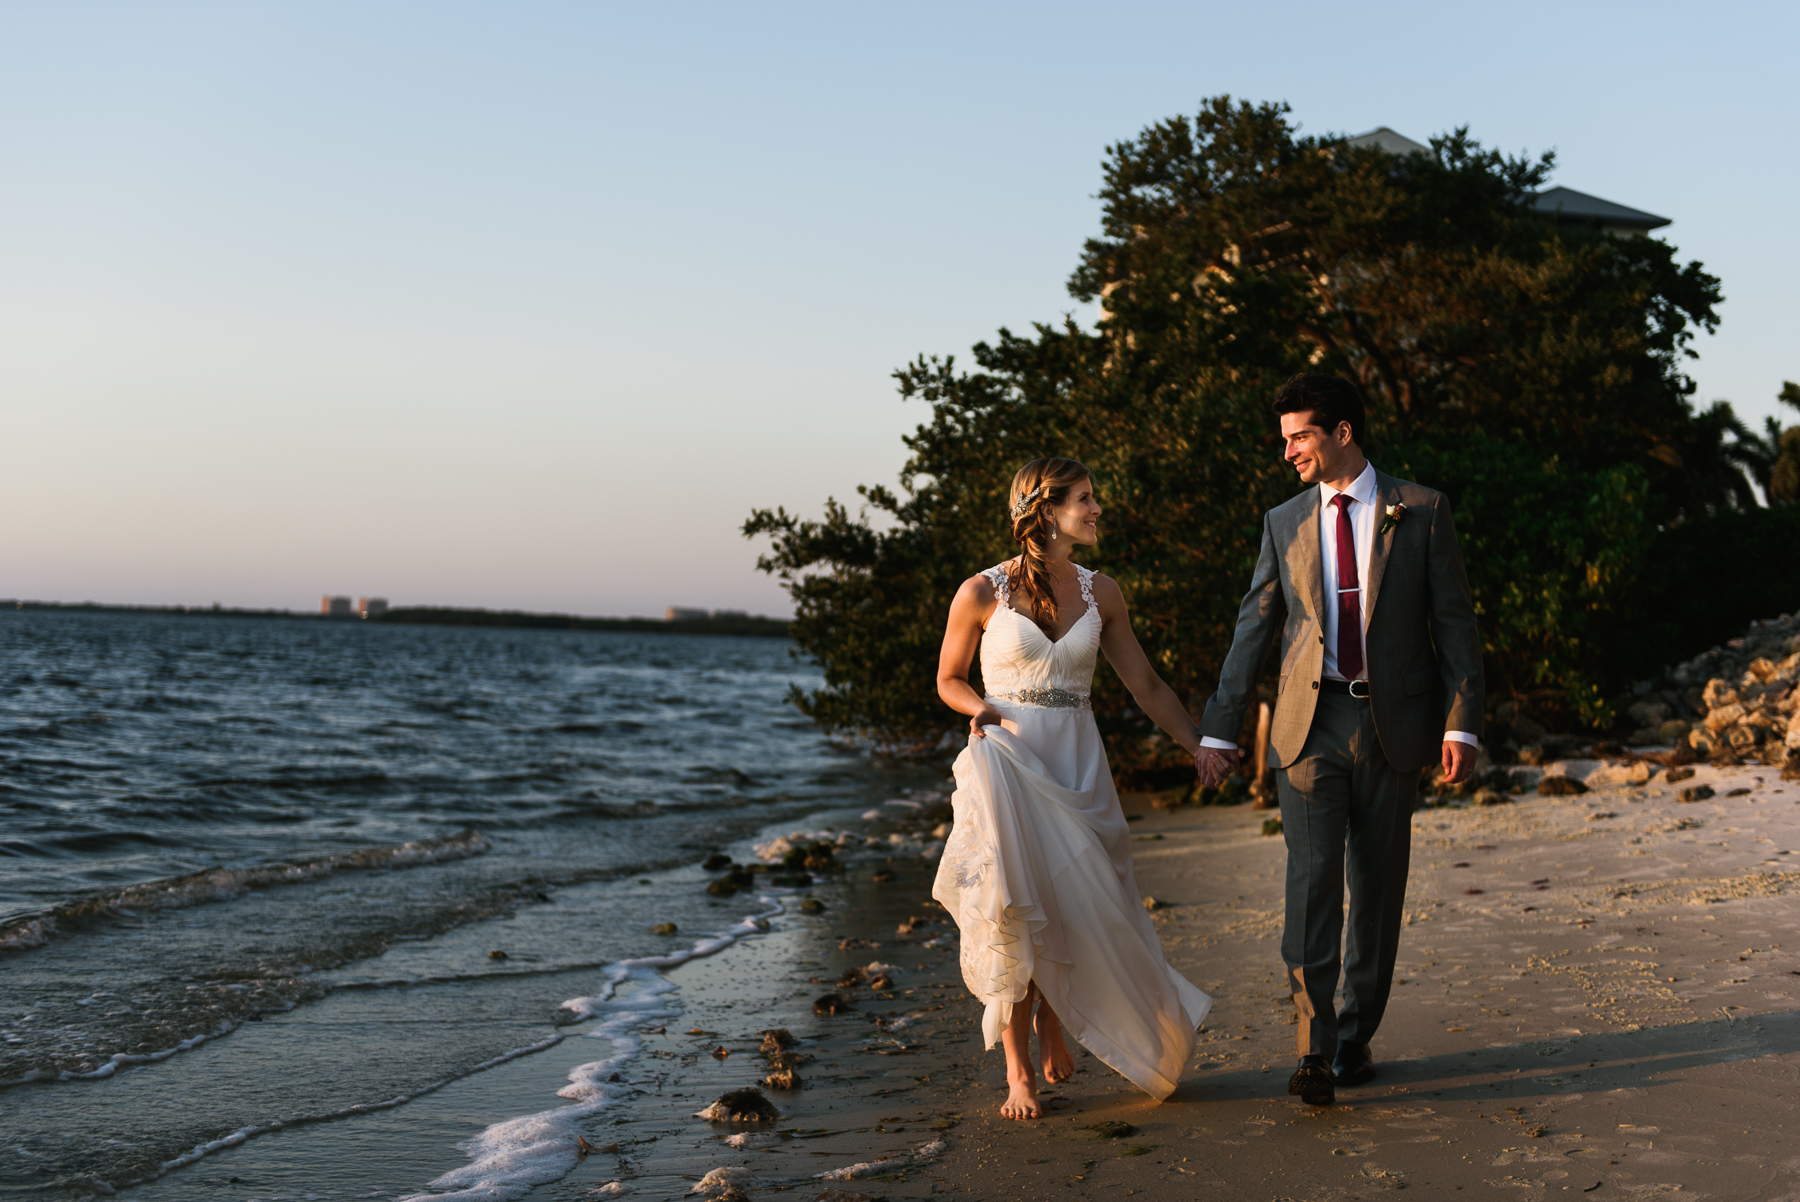 sanibel bride and groom walk beach at sunset